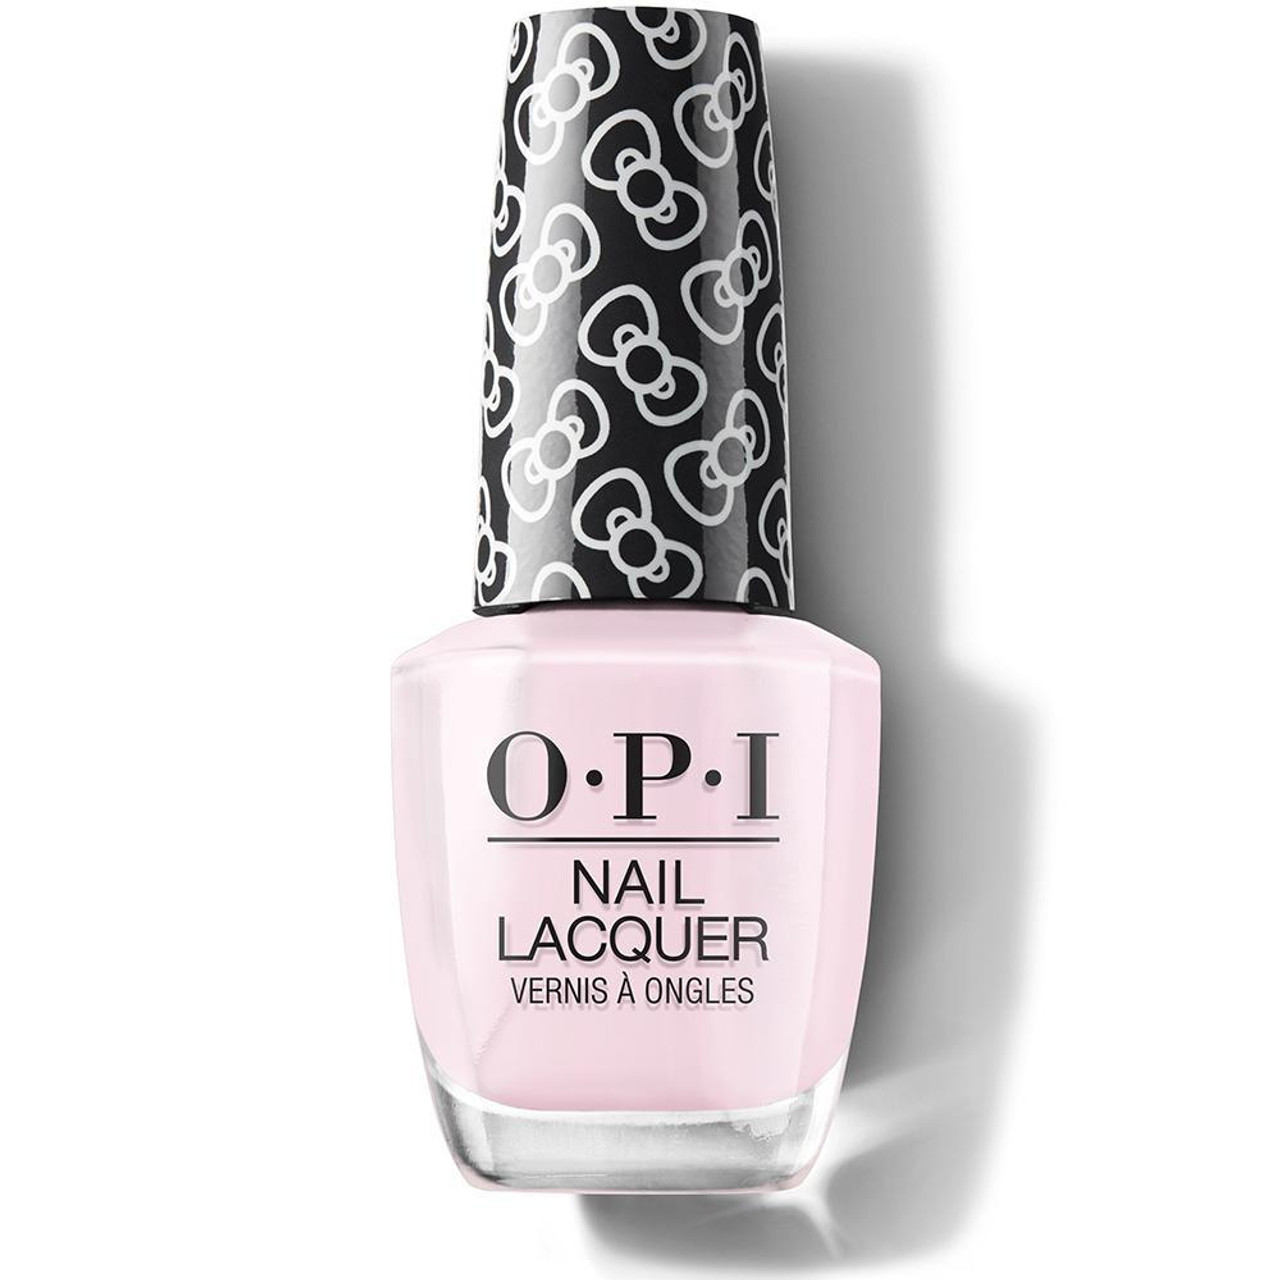 OPI Hello Kitty Limited Edition Nail Polish - Let's Be Friends! 15 mL  With this cotton-candy nail polish, create the perfect manicure with the OPI Hello Kitty Limited Edition Nail Polish. Celebrating the iconic character's 45th birthday, this collection is instantly recognizable thanks to the cute bow-printed lid. Easy to apply, the nail polish glides on effortlessly to deliver highly-pigmented, chip-resistant color, whilst its exclusive ProWide brush allows controlled, precise application for mistake-free, salon-worthy tips. Made in the USA.